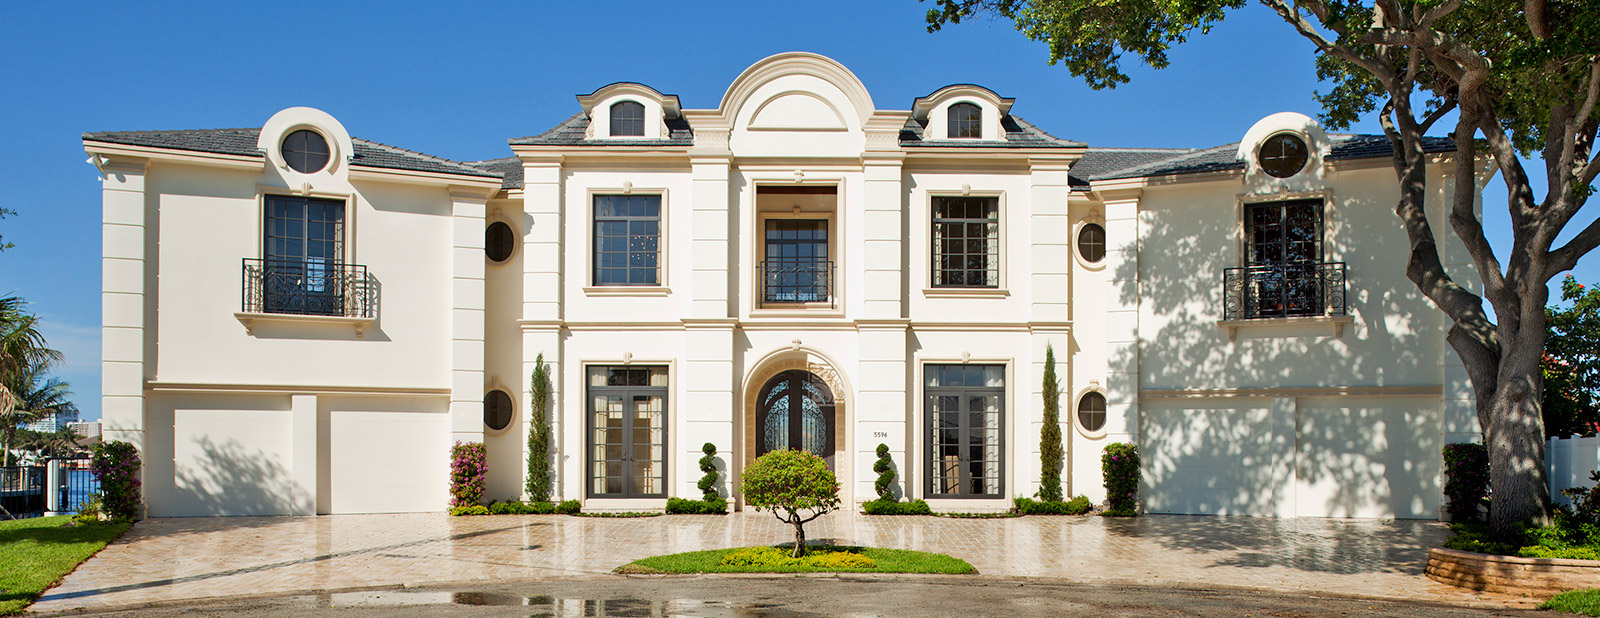 Fort Lauderdale French chateau architecture design